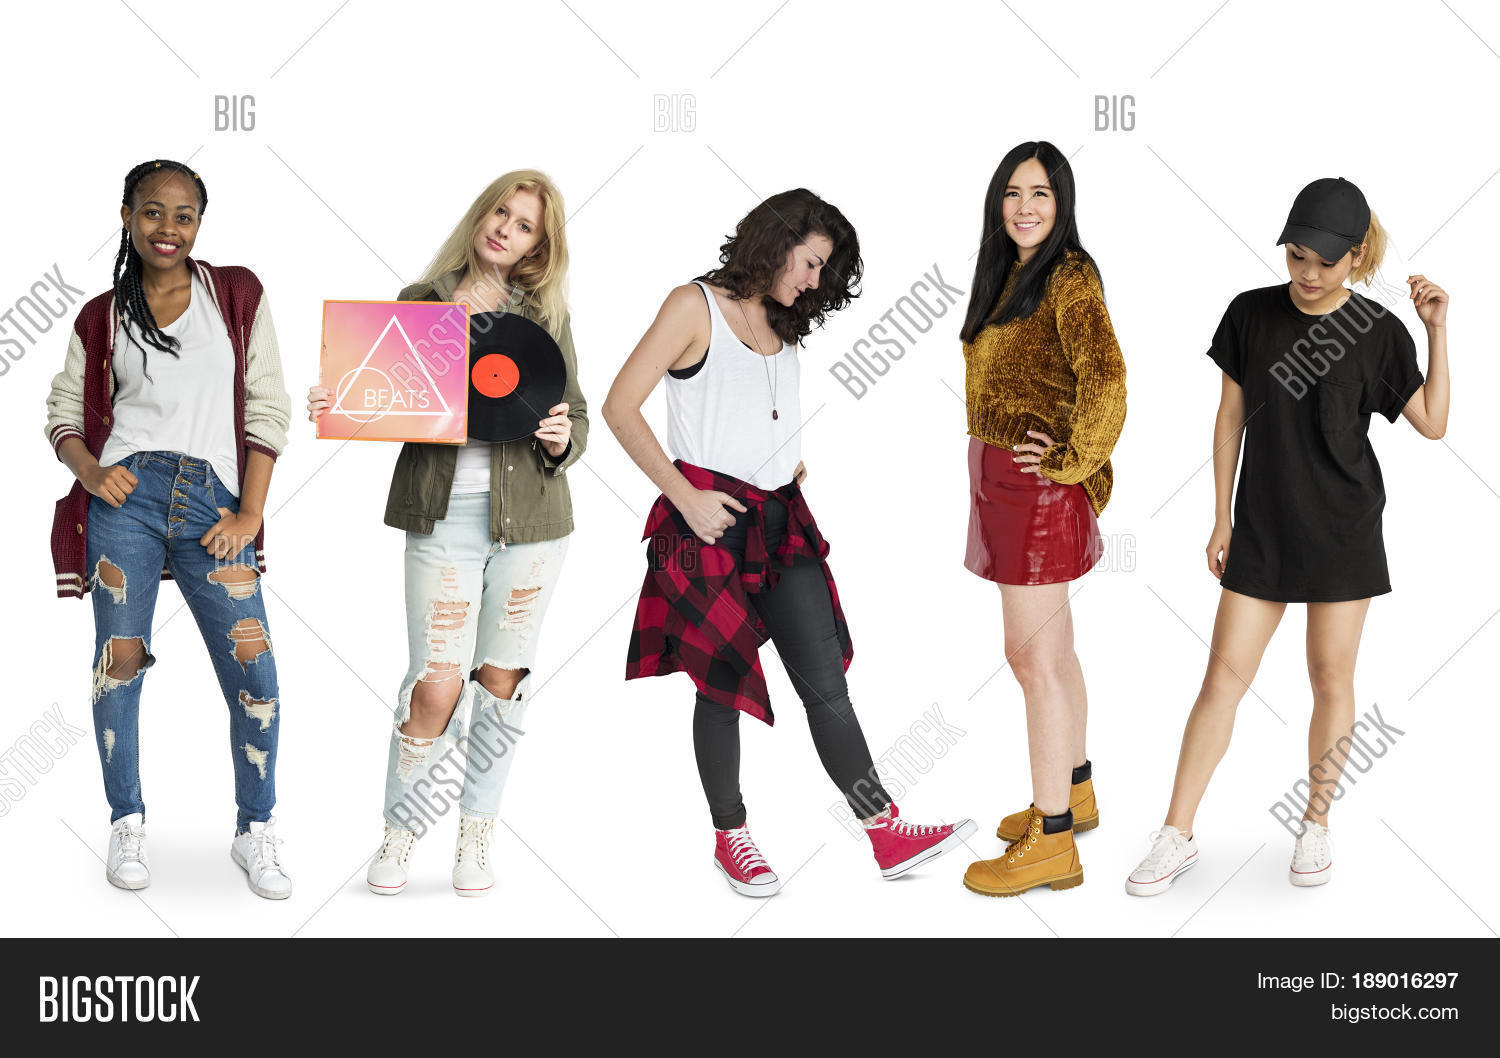 Group girls differences fashion image photo bigstock Different fashion style groups